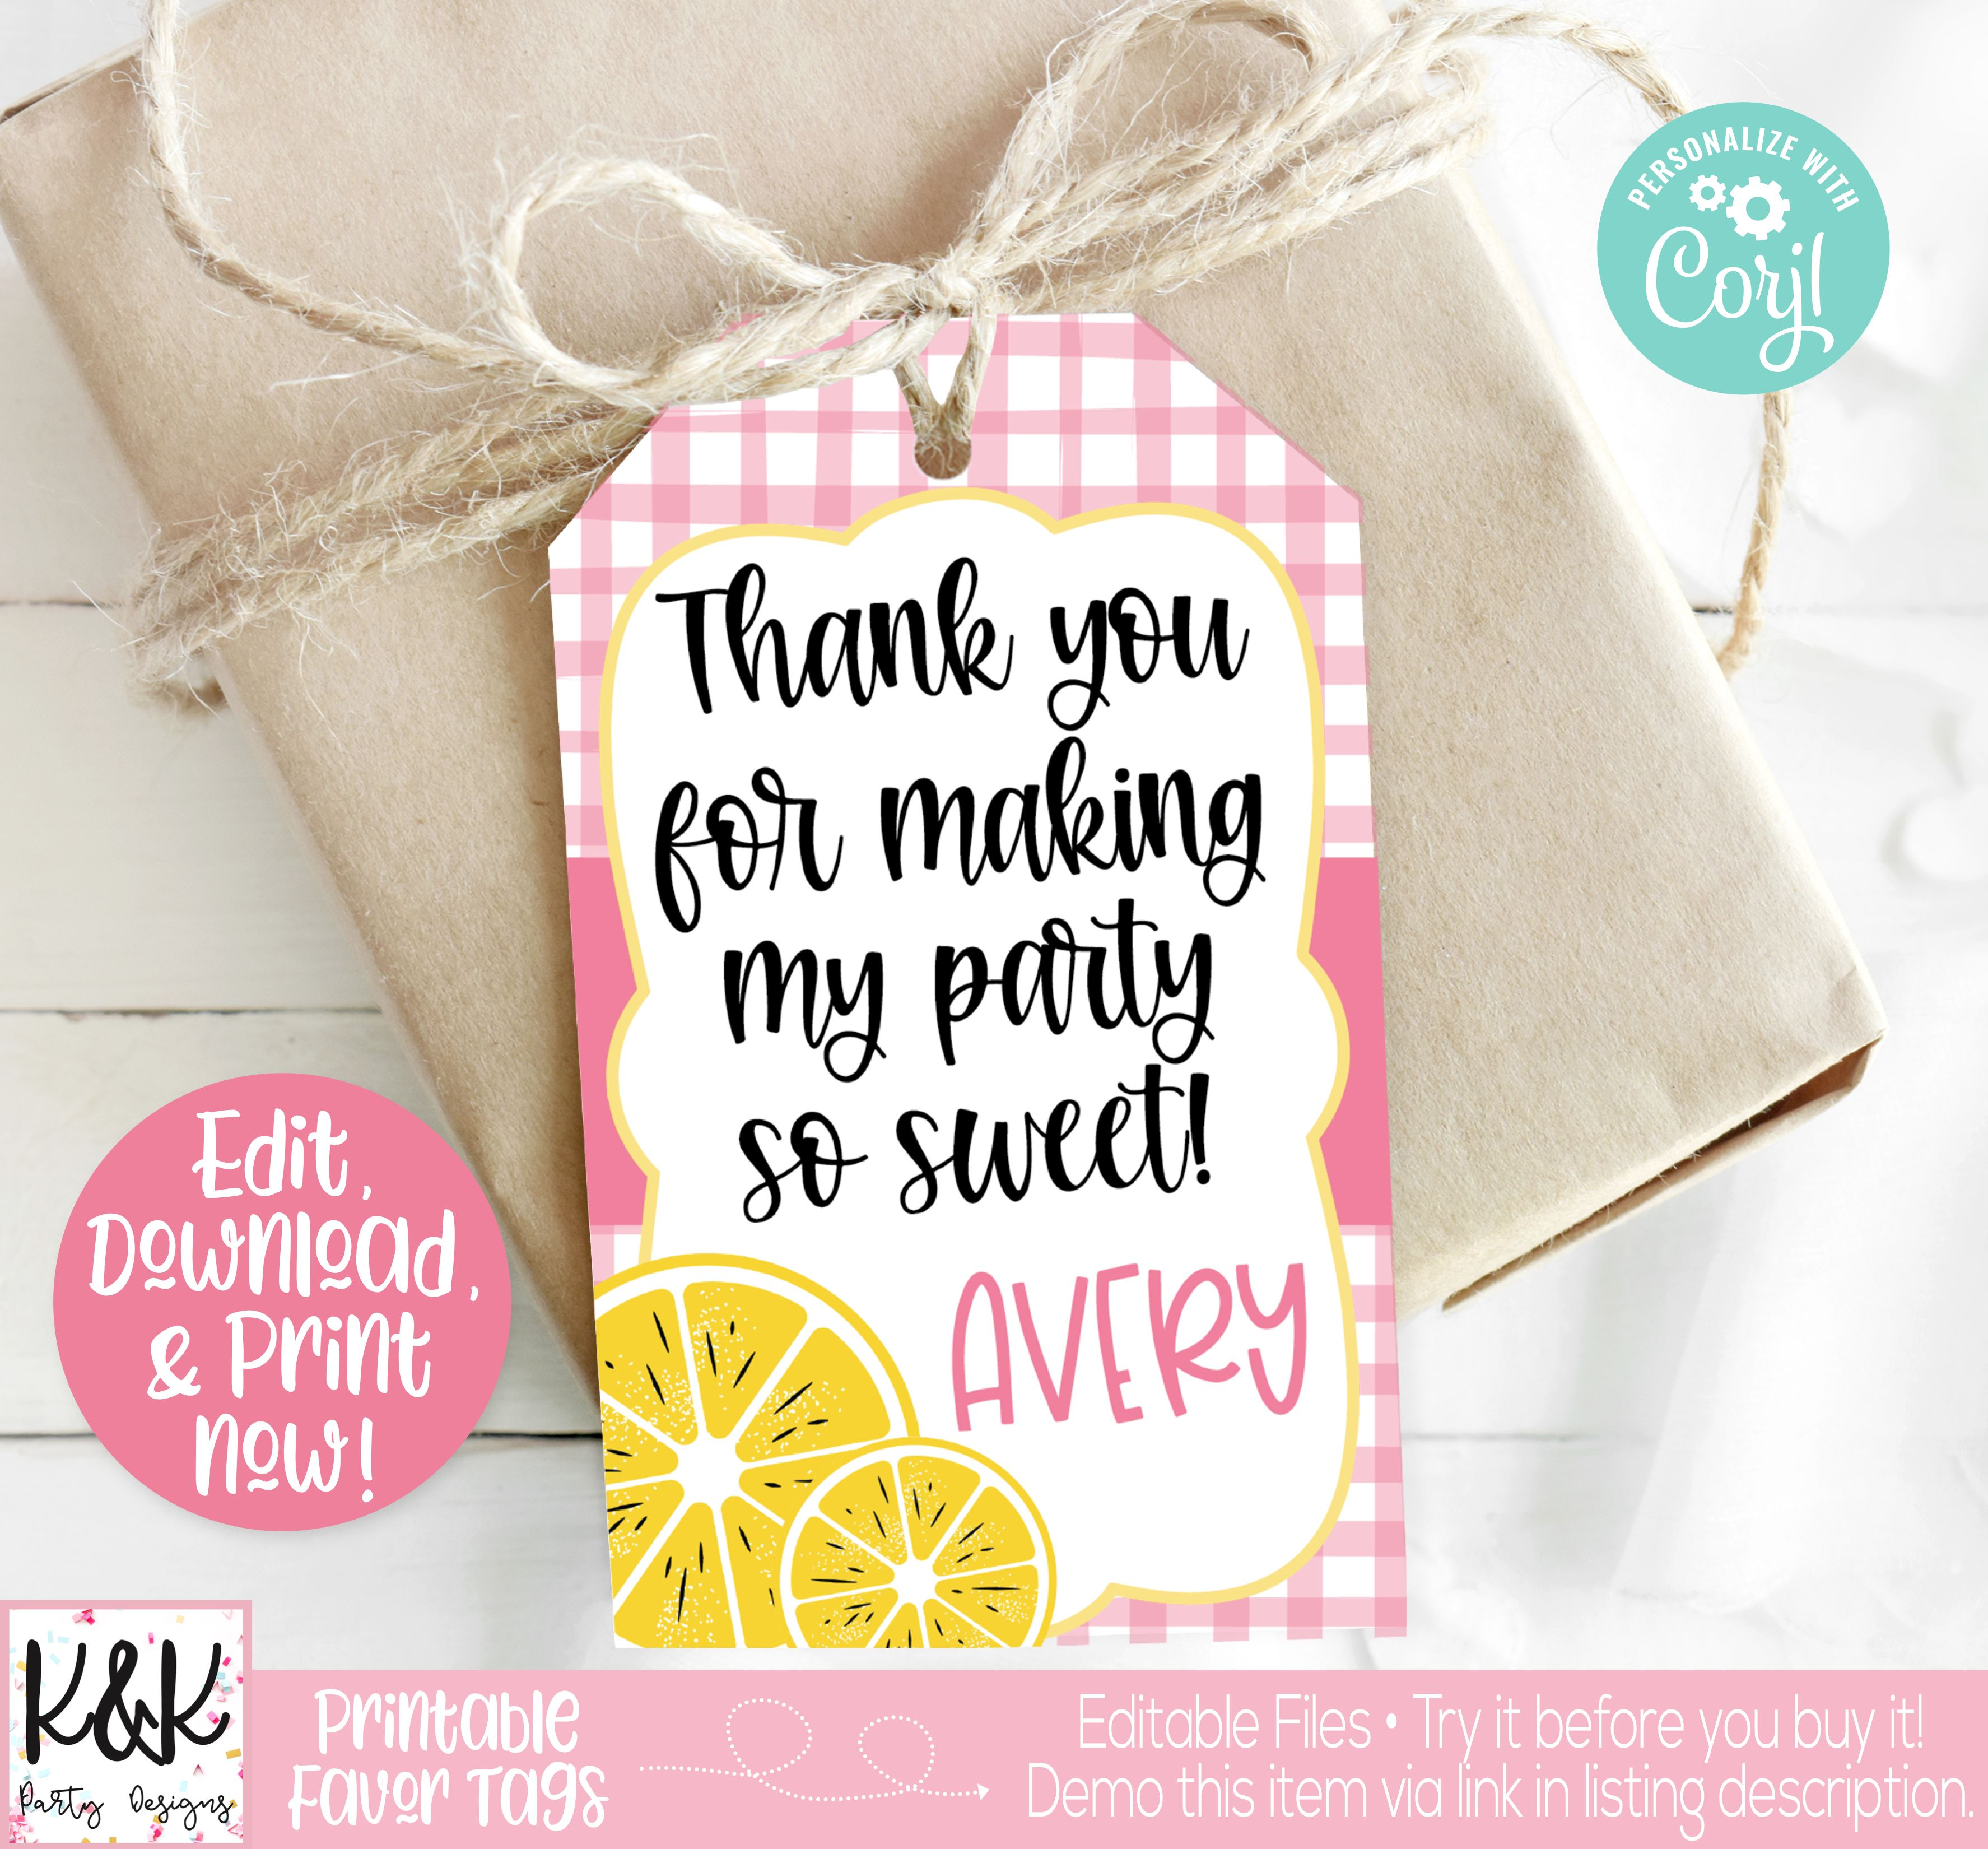 Pink Lemonade Birthday Party Favor Tag, Girls Birthday Party Idea, Pink Lemonade Party Printable, Pink Lemonade Birthday Party Decorations, Lemonade Stand Party  #PinkLemonade #Lemonadestand #BirthdayParty #Invitation #PartyIdeas #GirlsBirthday #1stBirthday #FirstBirthday #LemonadeParty #DIY #PartyTheme #PartyDecorations #BirthdayDecorations #Decorations